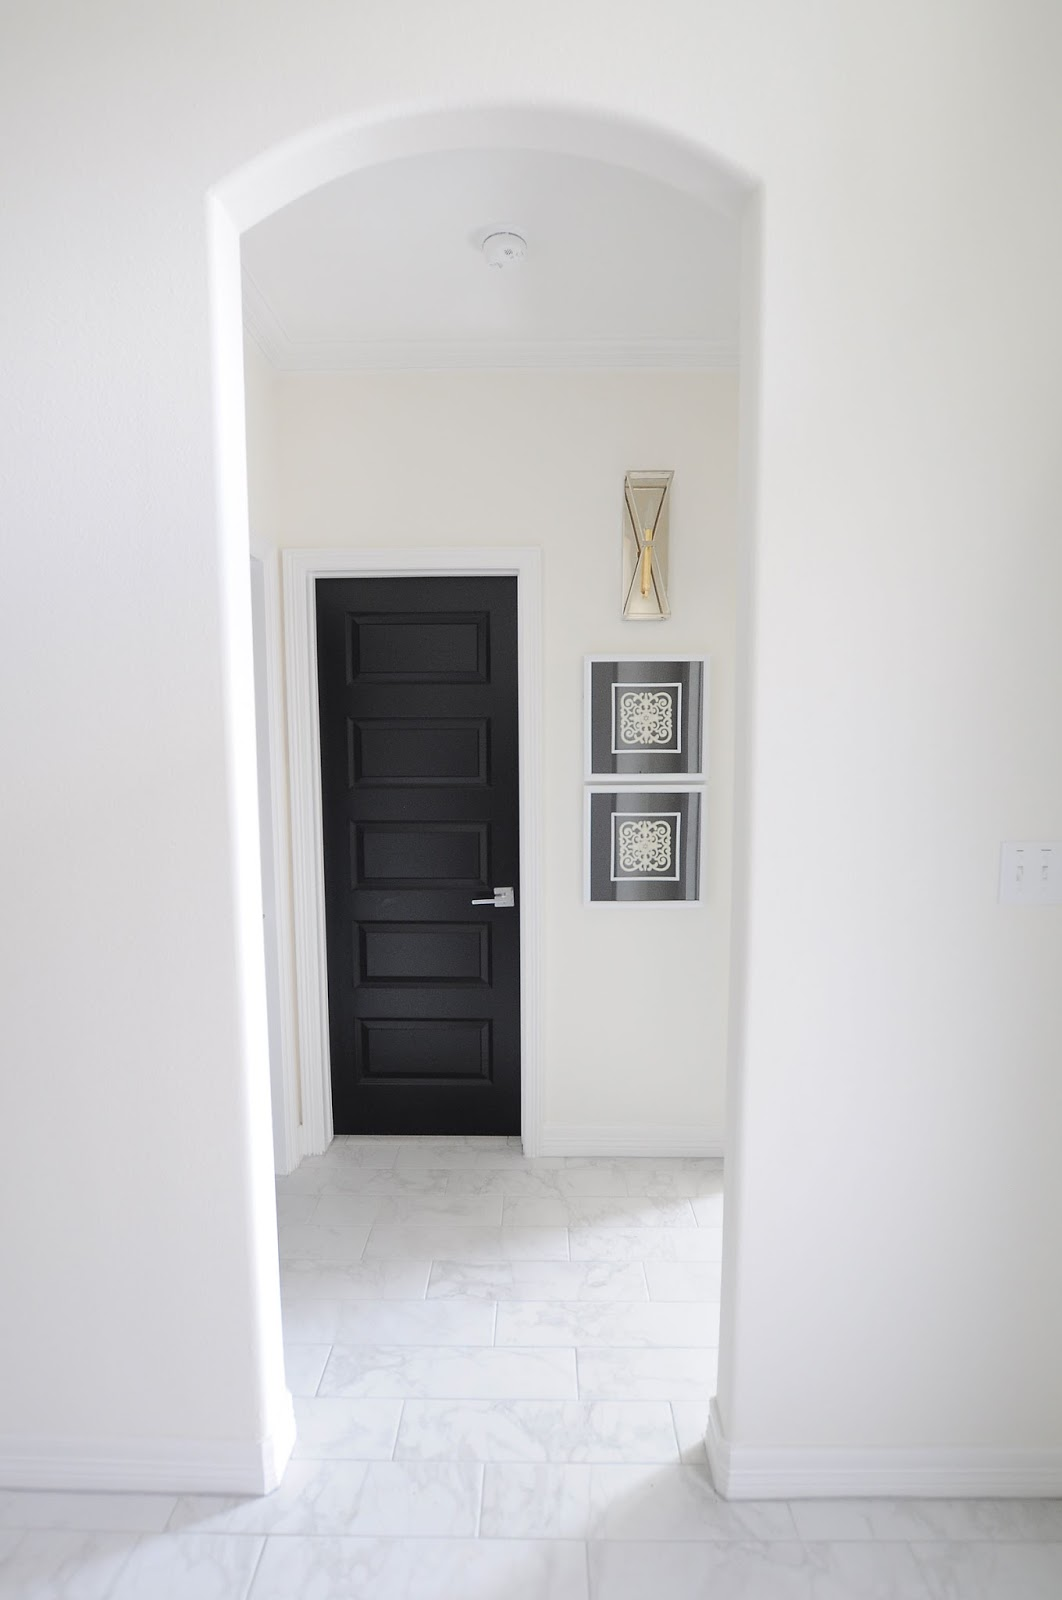 Black interior doors with white walls and a chrome and gold hallway sconce under an archway.